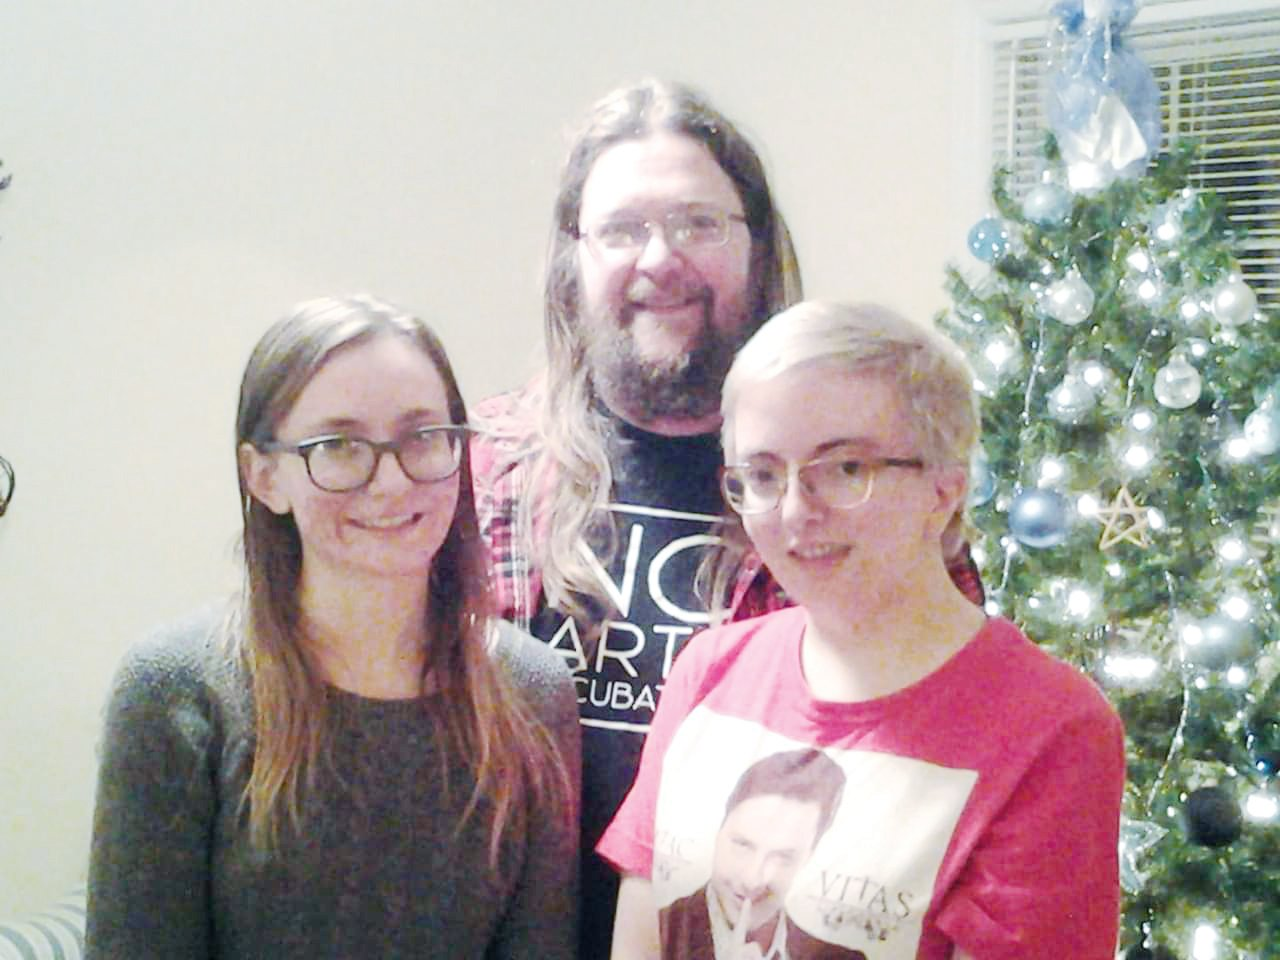 JR Butler (center) with his daughters Makayla Butler (left) and Danielle Riley (right) this past Christmas.